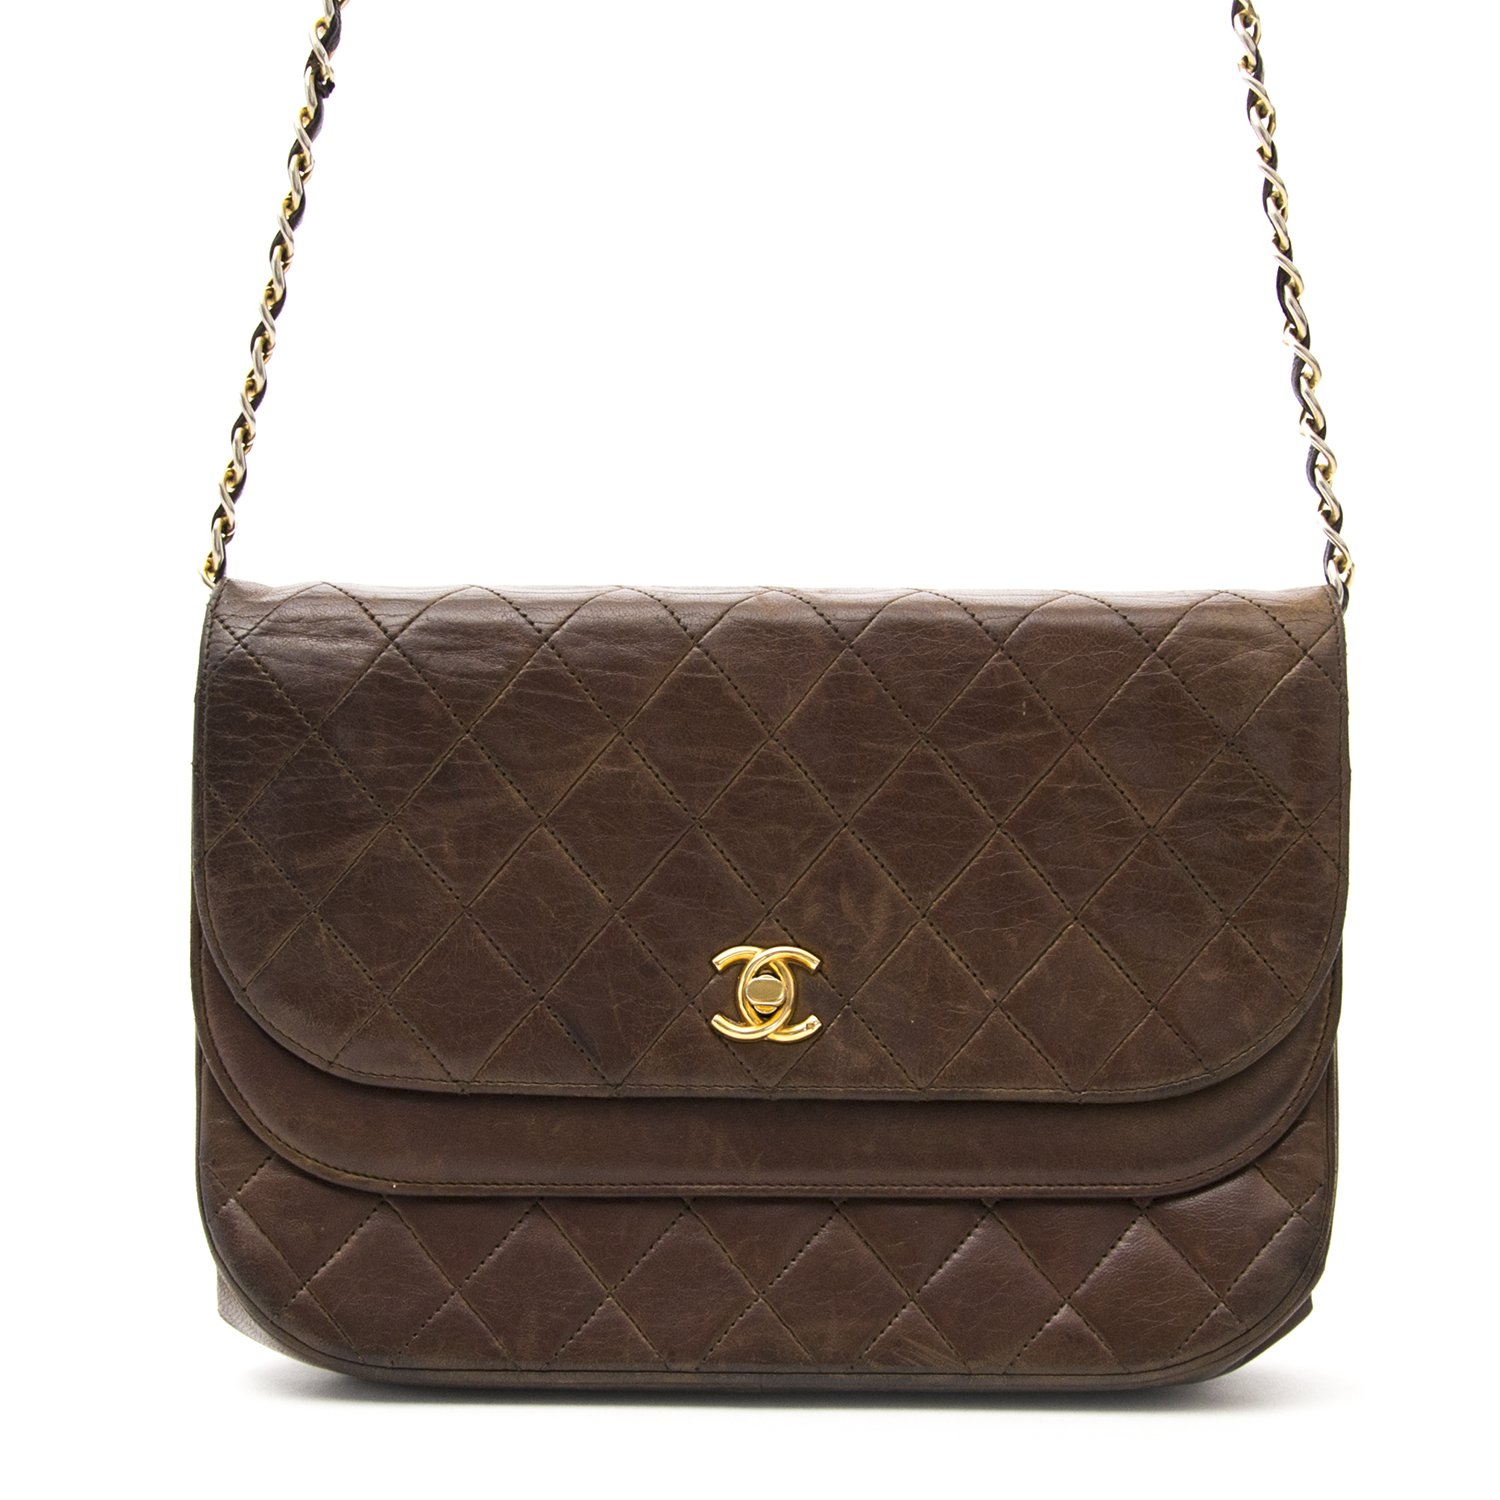 2c44d7f43e27 Chanel Brown Flap Bag Secondhand Chanel brown handbag for the best price at  Labellov webshop. Safe and secure online